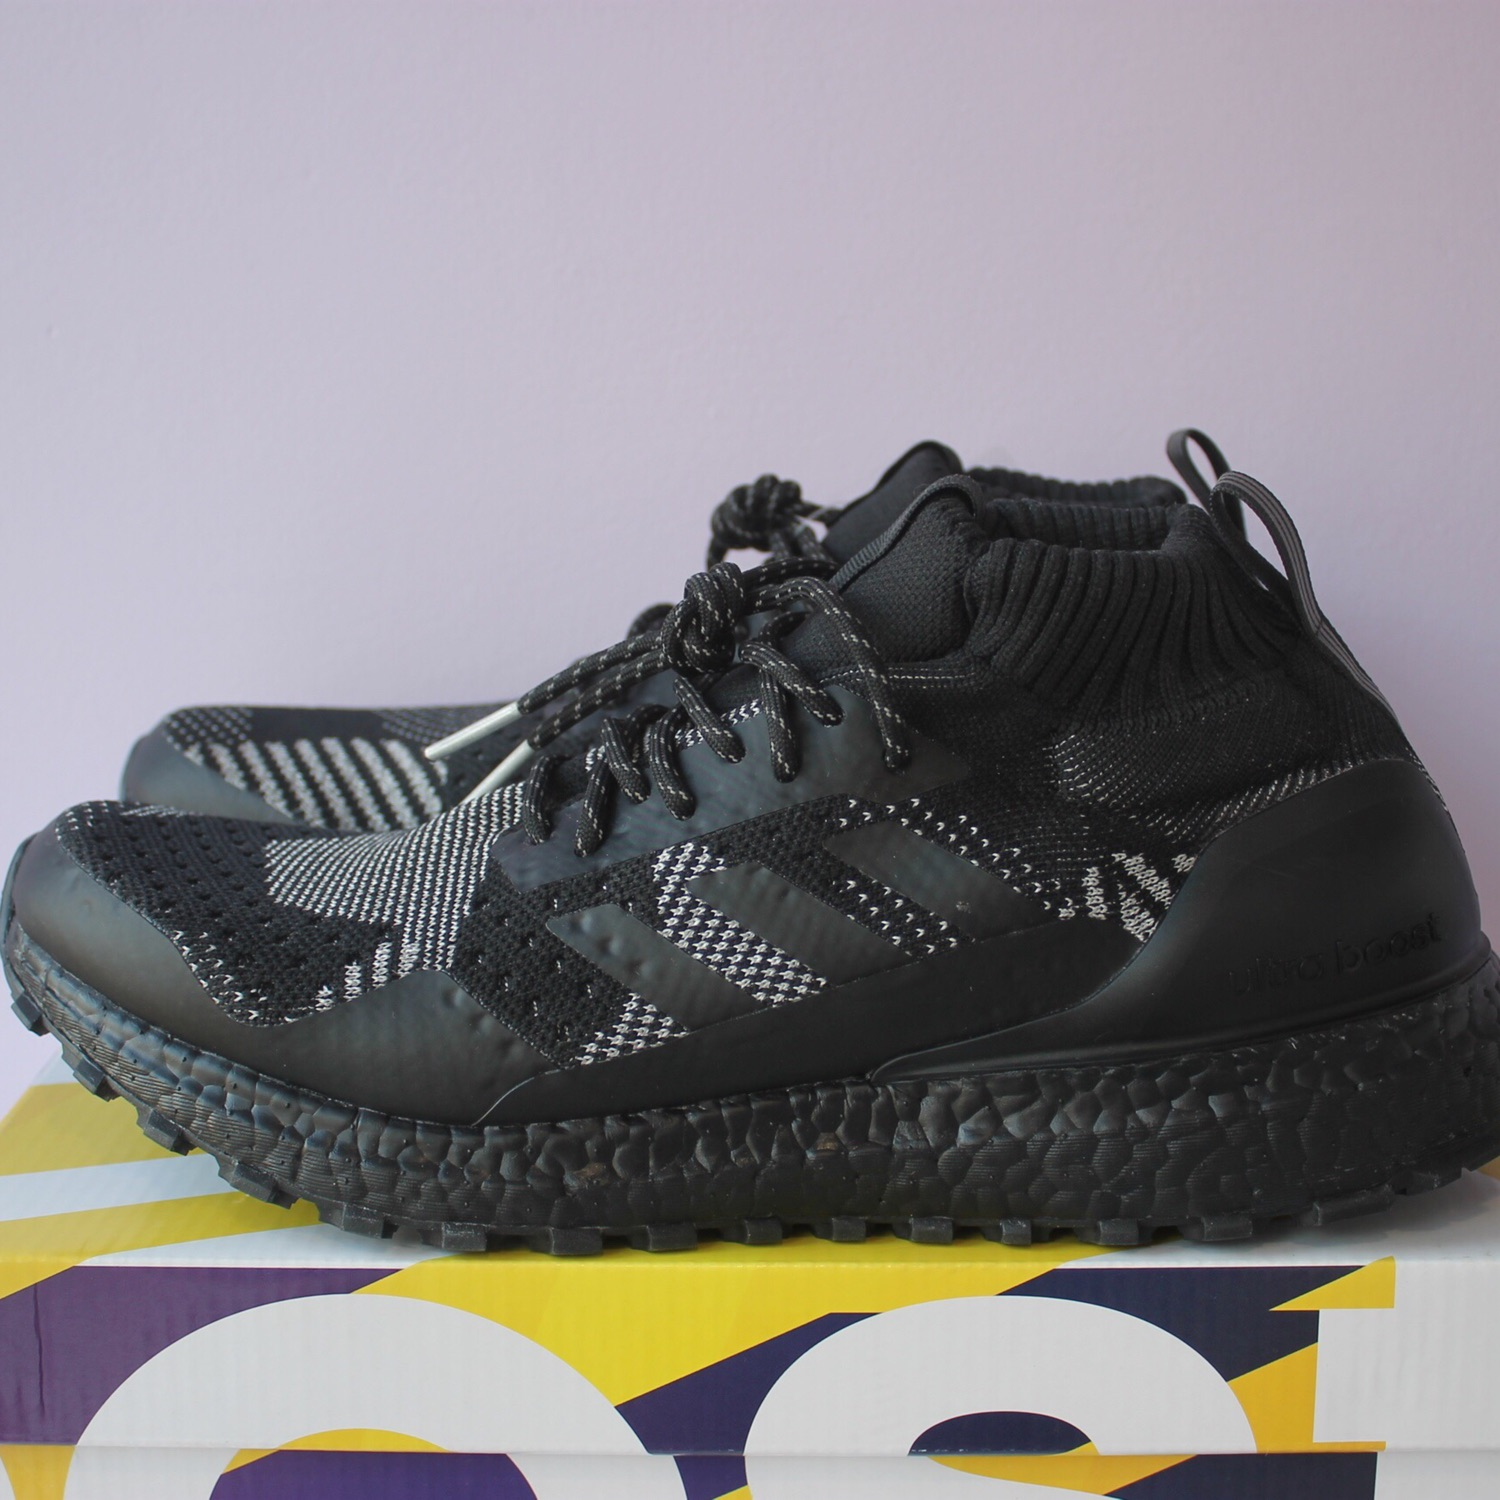 separation shoes 5fb3d ab7cd Adidas X Kith X Nonnative Ultraboost Mid Atr